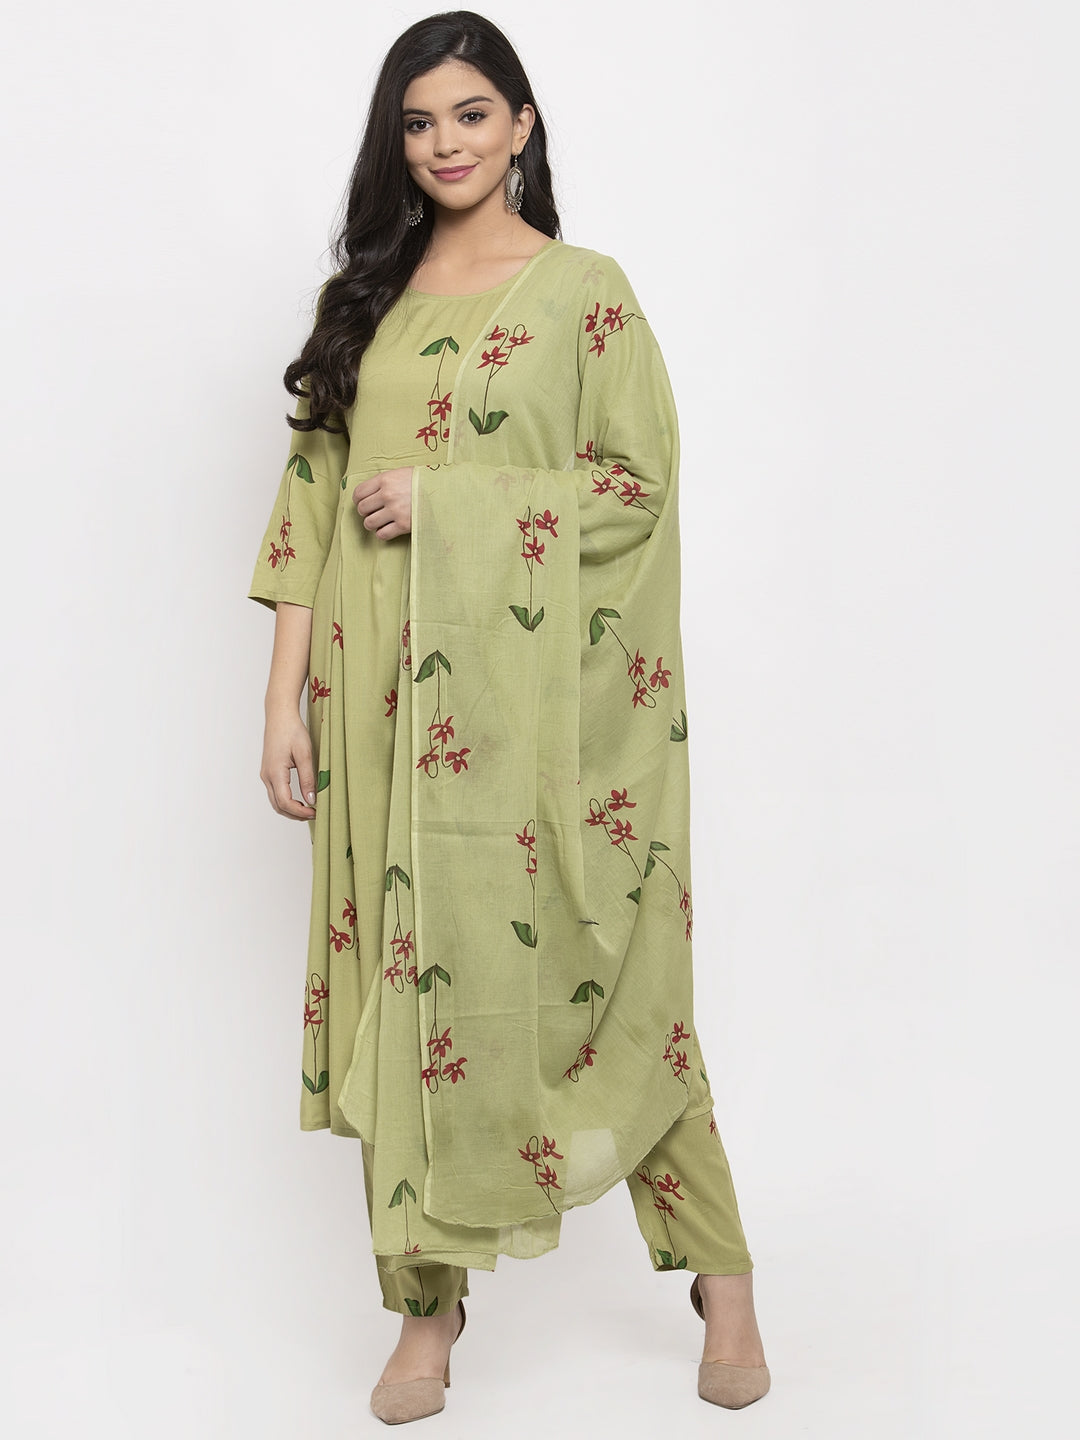 Aujjessa Green Printed Kurta Trouser Set